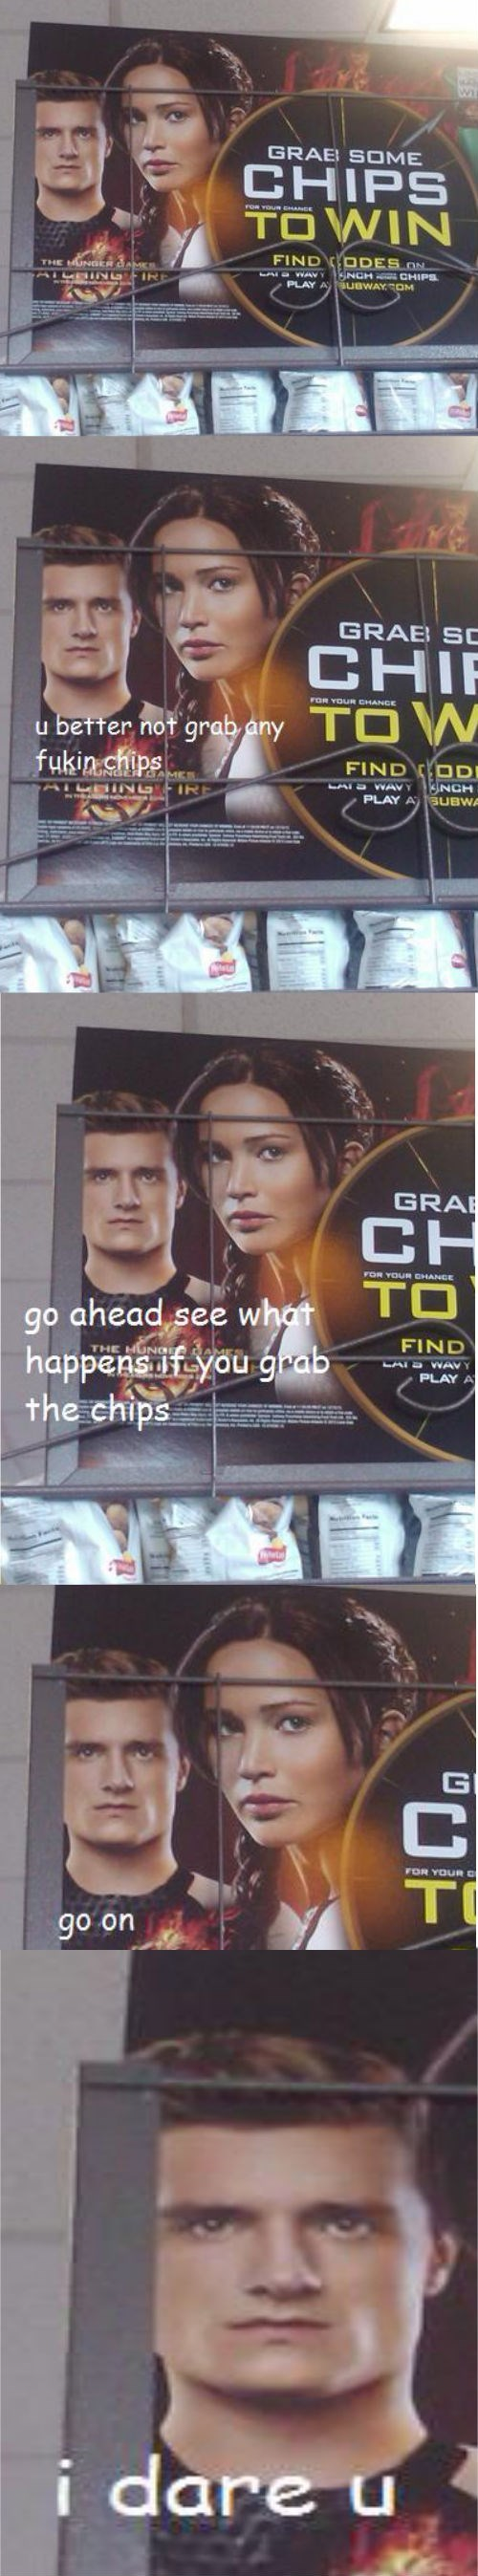 chips,movies,hunger games,peeta